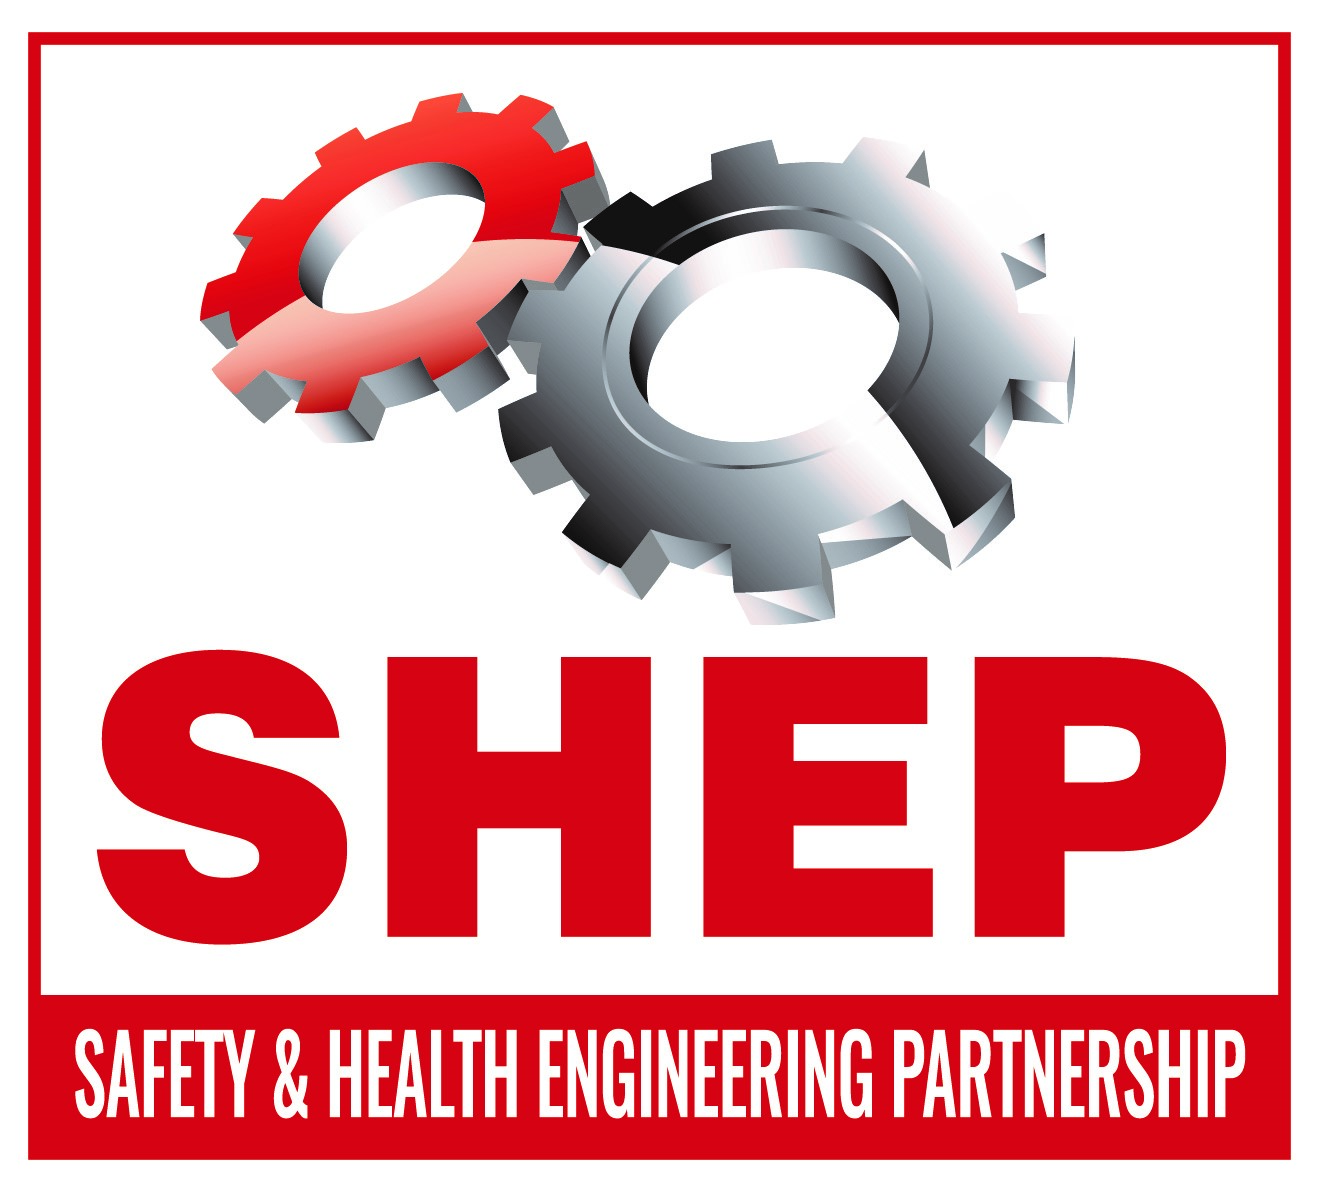 SHEP seminar aims to prepare engineering SMEs for 2020 HSE inspections